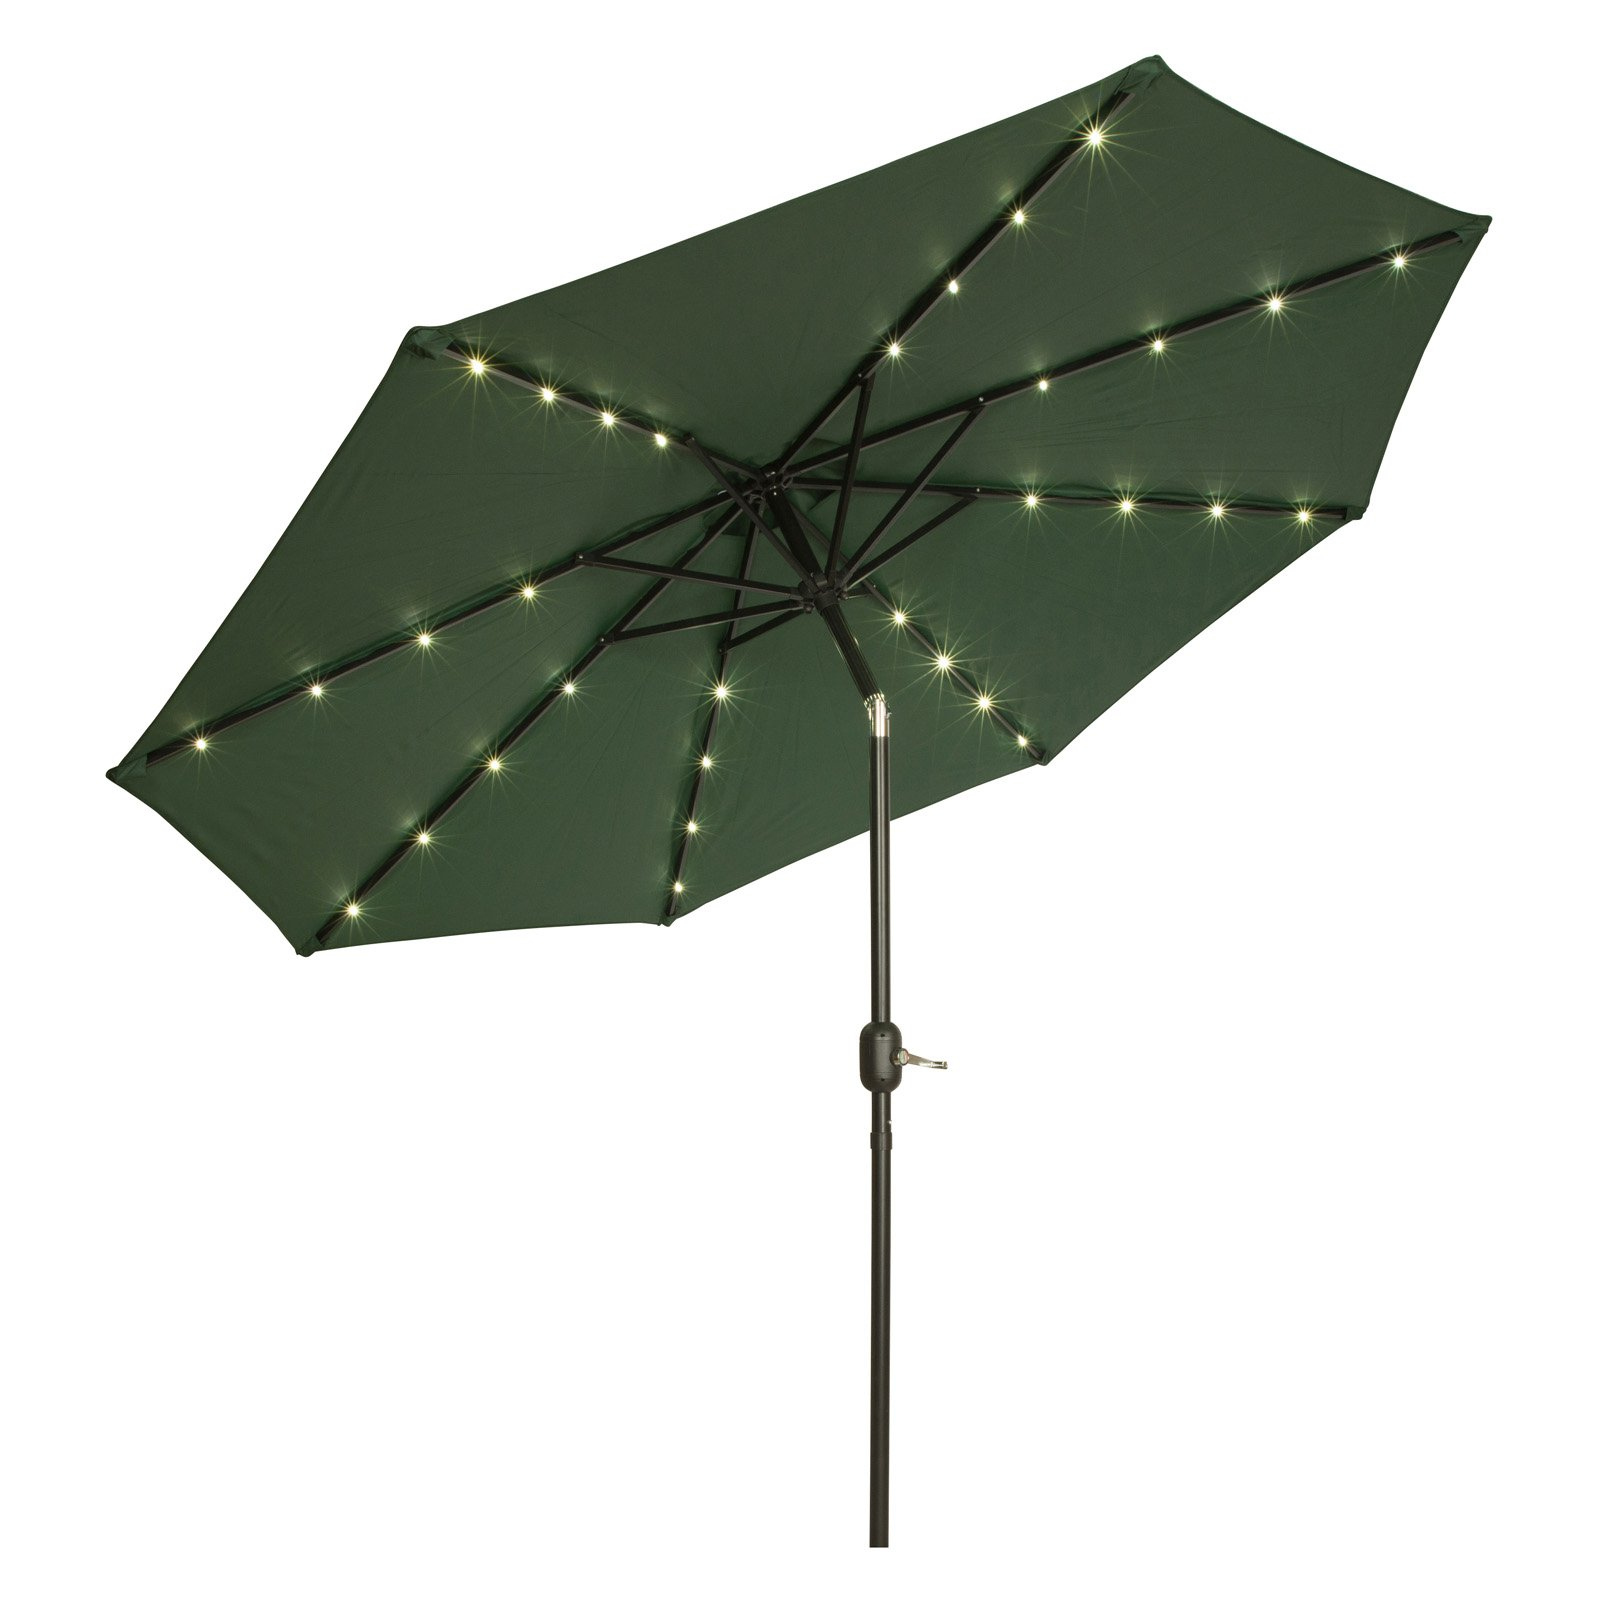 Deluxe Solar Powered LED Lighted Patio Umbrella 9' By Trademark Innovations (Black) by Trademark Innovations